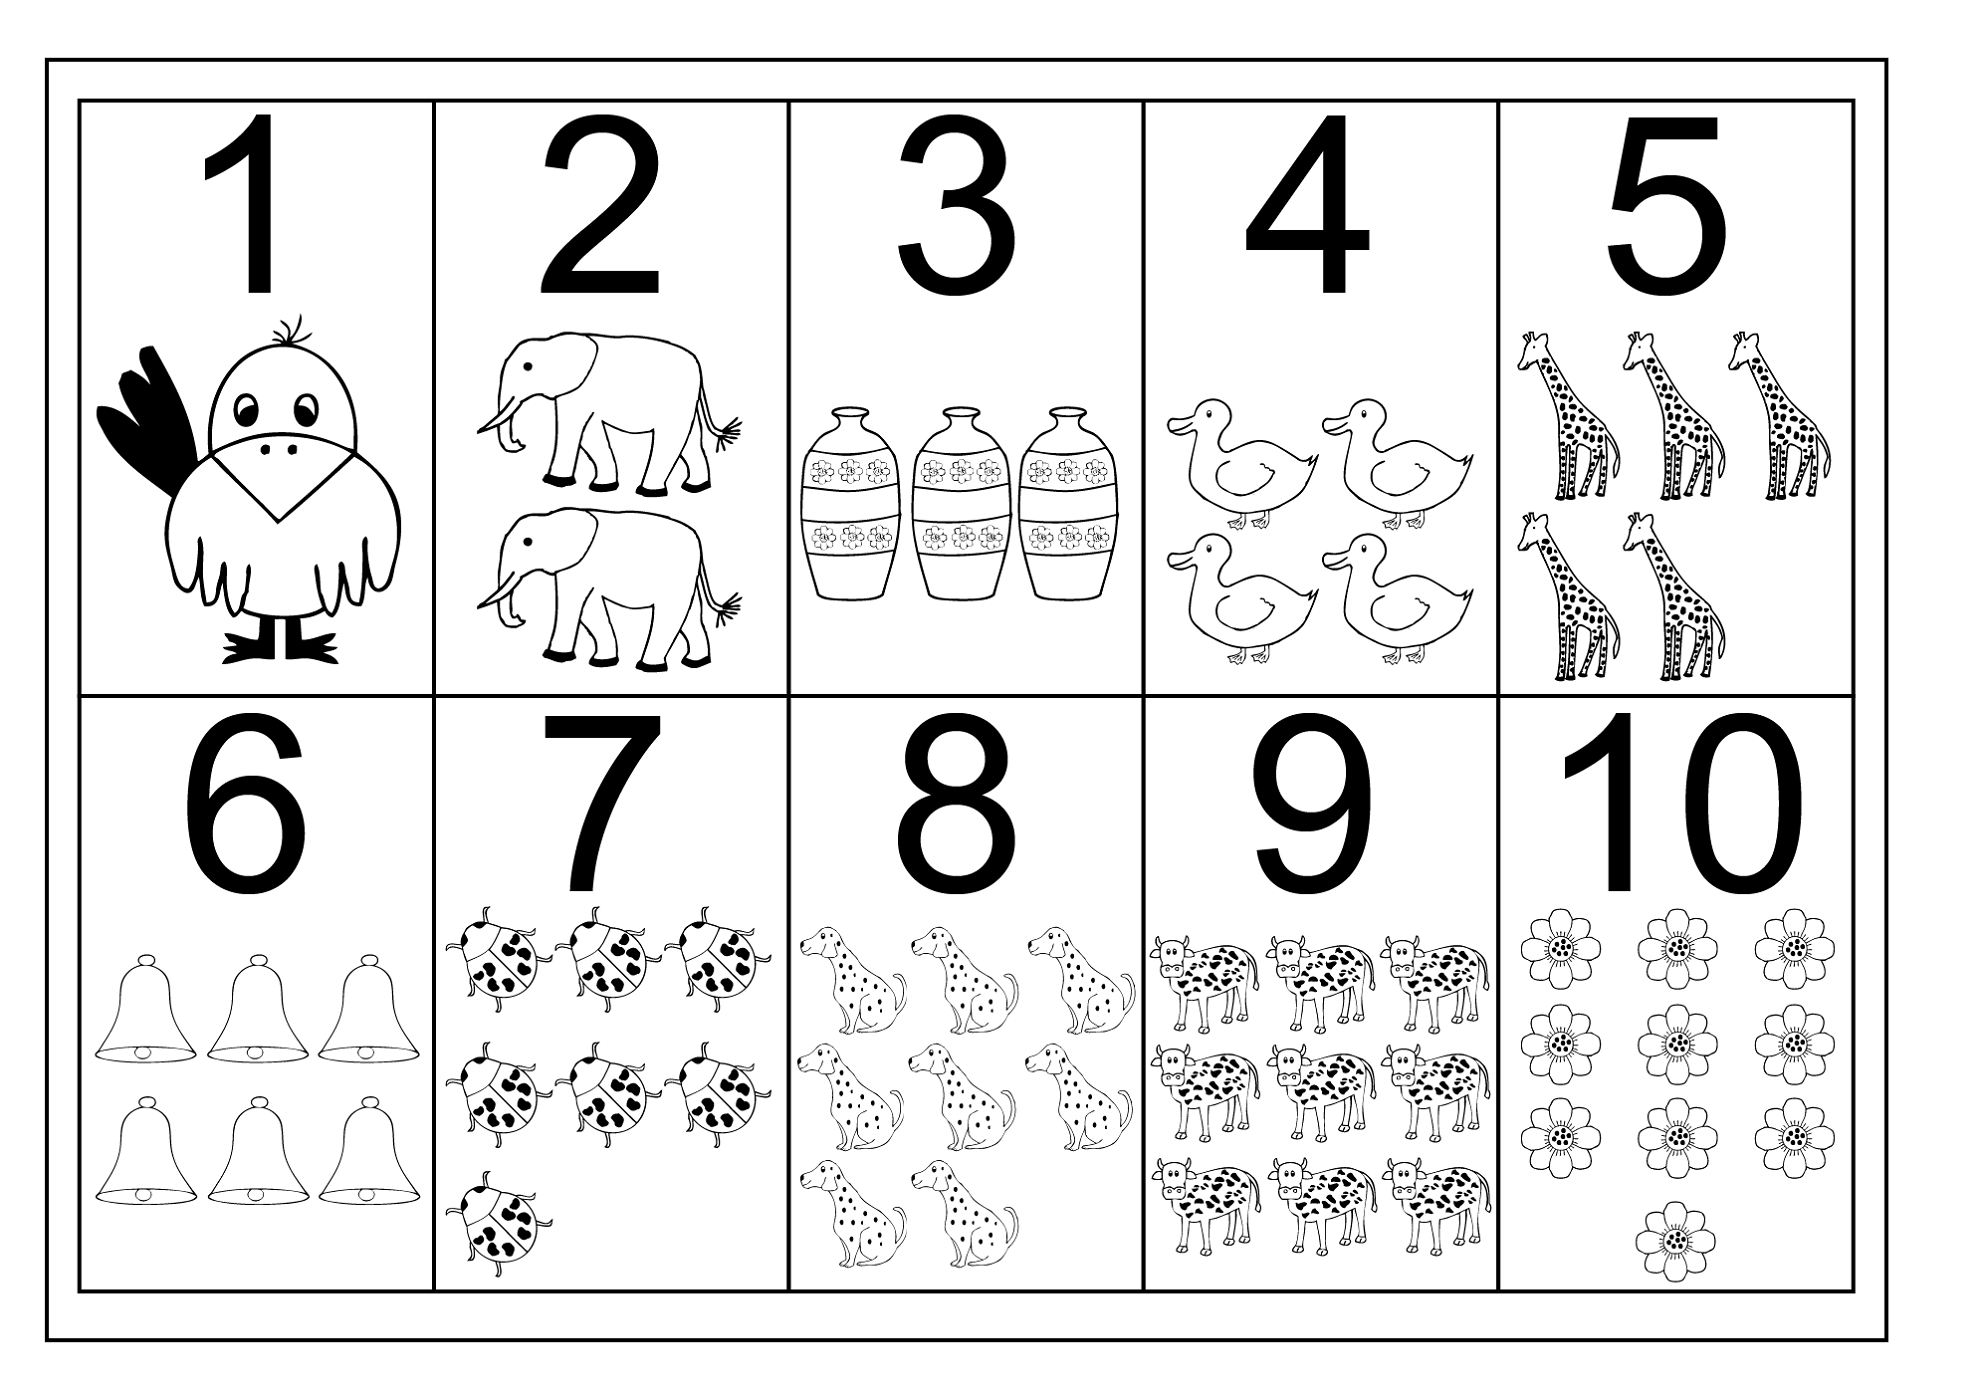 number chart 1-10 counting